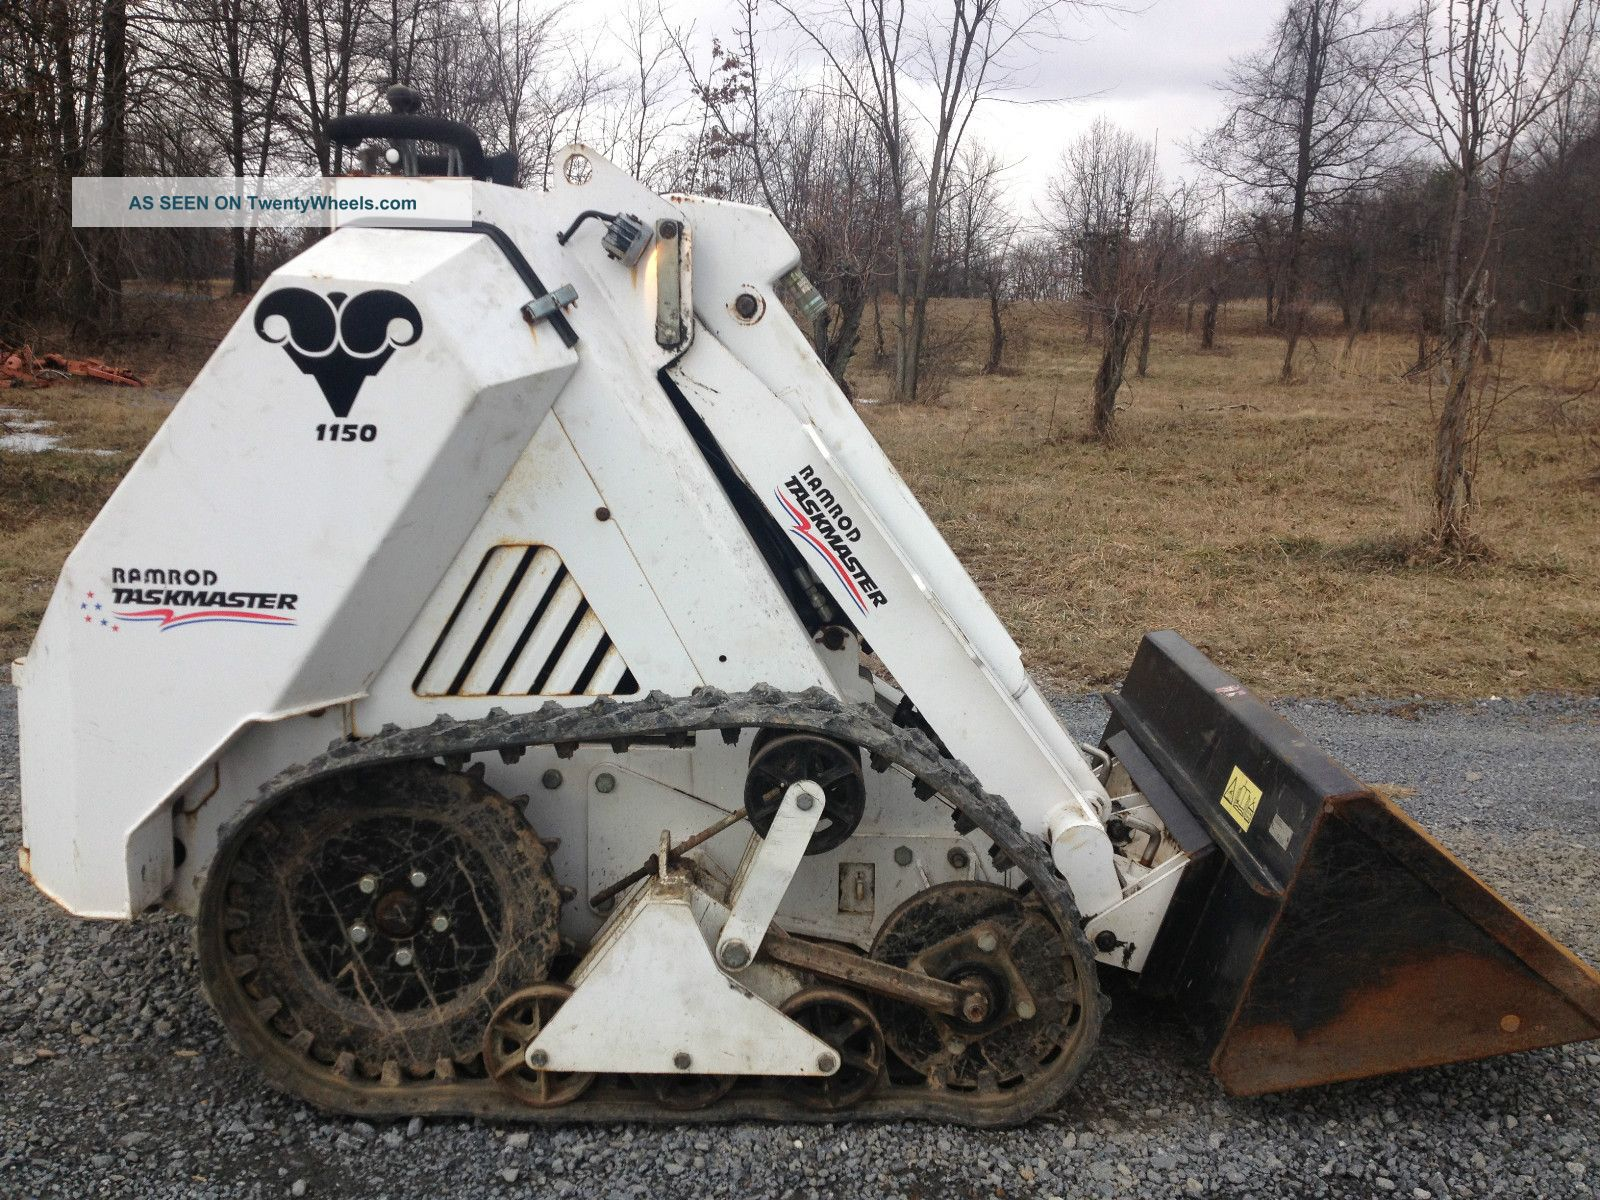 Ramrod Taskmaster Mini Tracked Skid Steer Loader Skidloader Low Cost Skid Steer Loaders photo